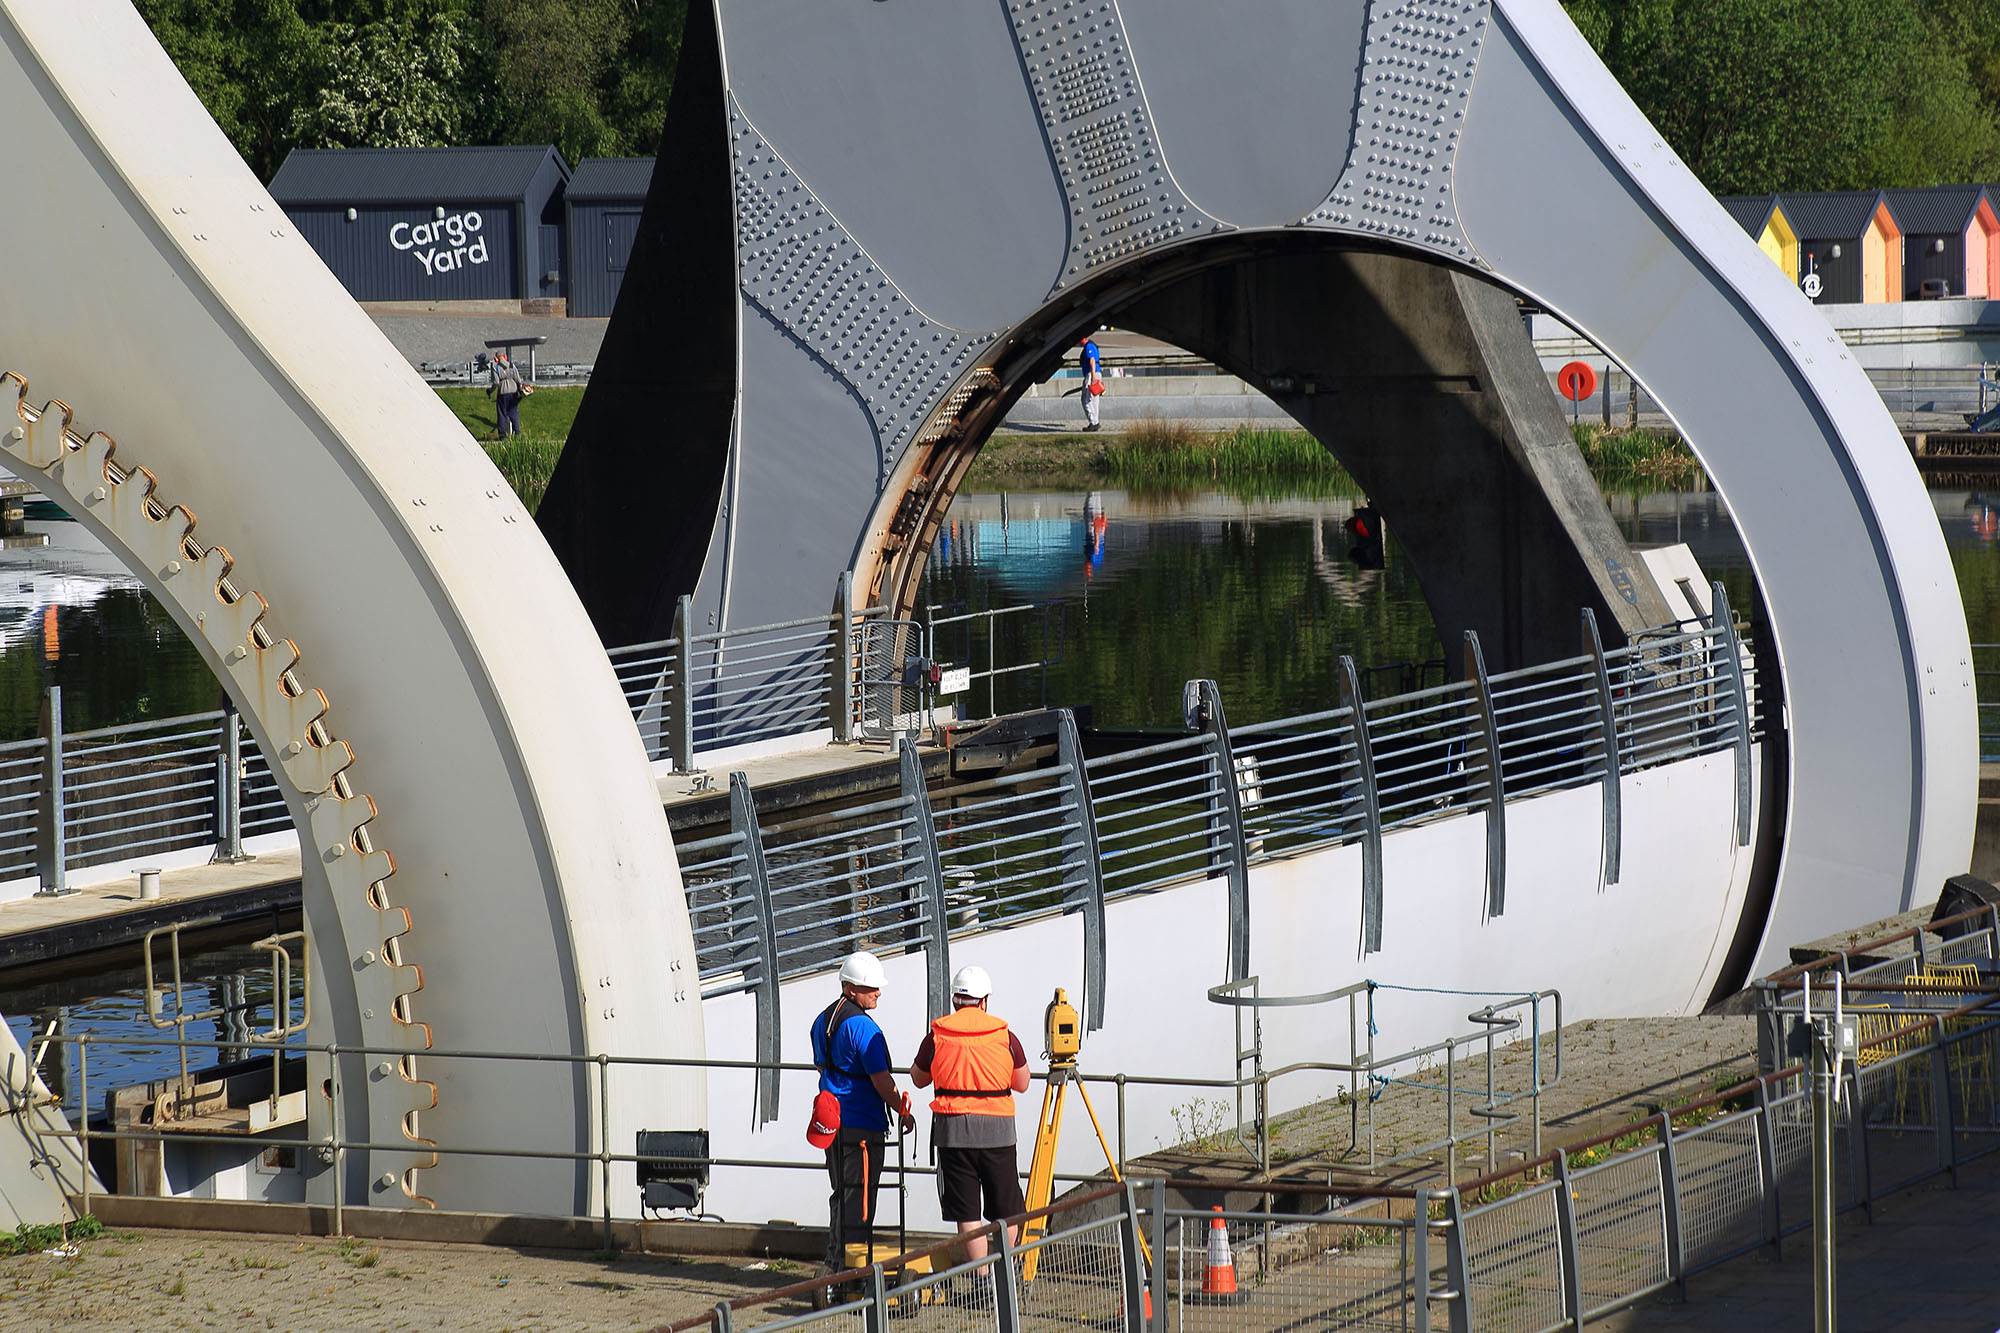 Students at the Falkirk Wheel